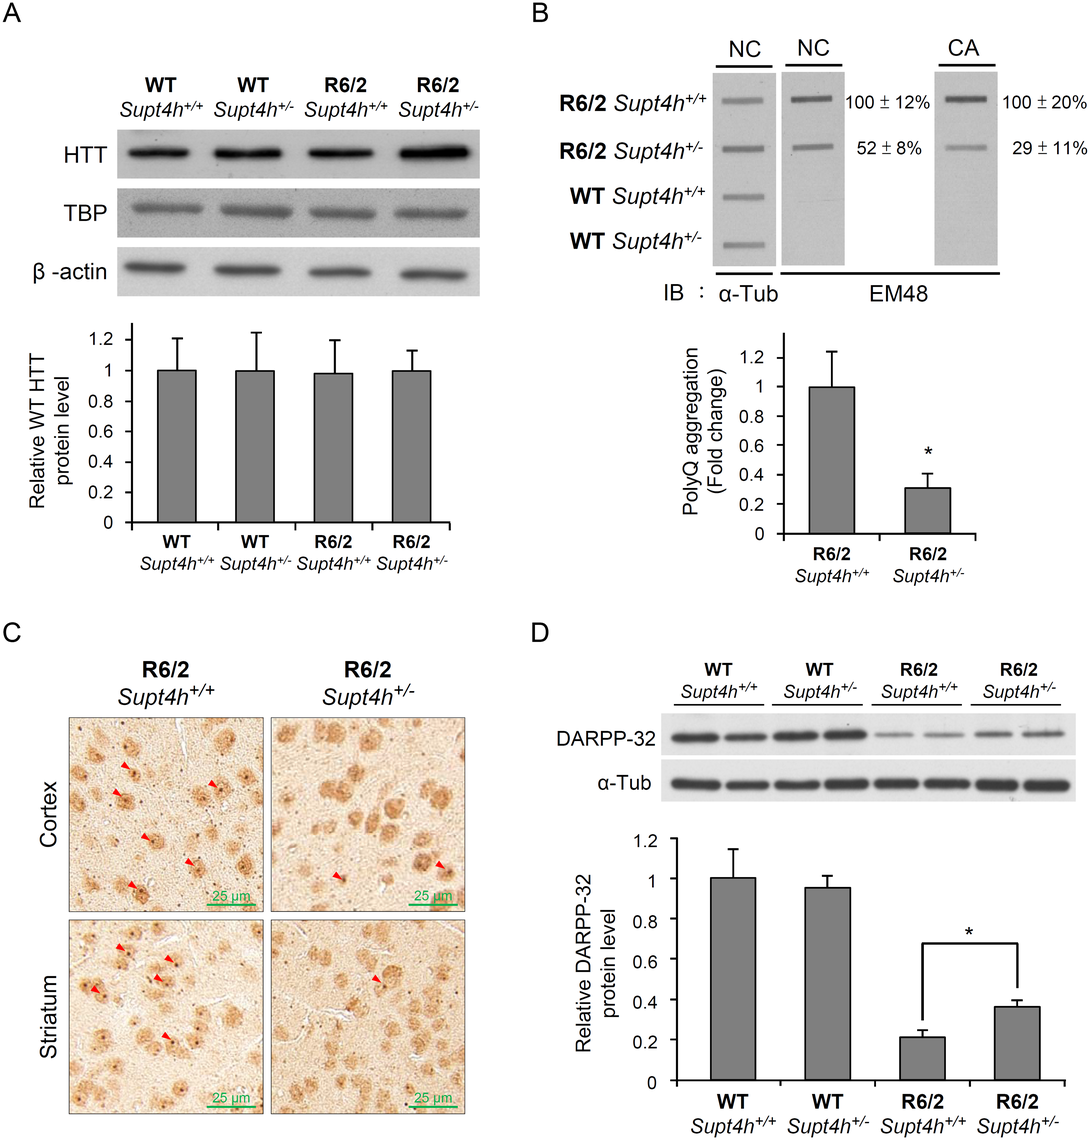 Mutant HTT aggregation in the brain of R6/2 mice deleted for one <i>Supt4h</i> allele.